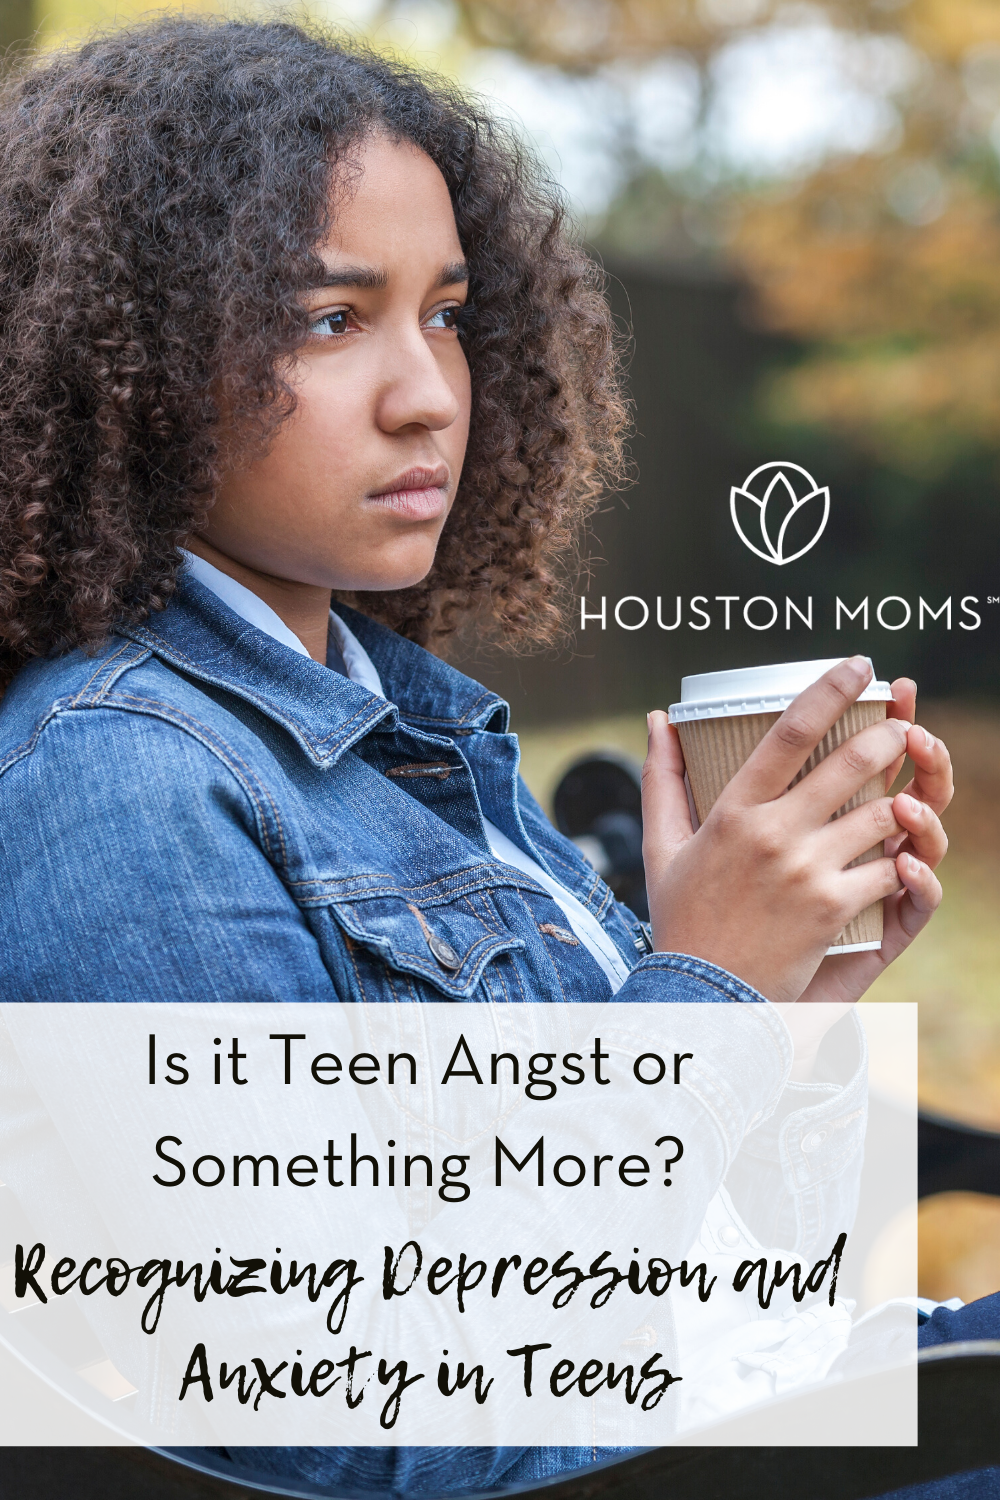 """Houston Moms """"Is it Teen Angst or Something More? Recognizing Depression and Anxiety in Teens"""" #houstonmoms #houstonmomsblog #momsaroundhouston"""